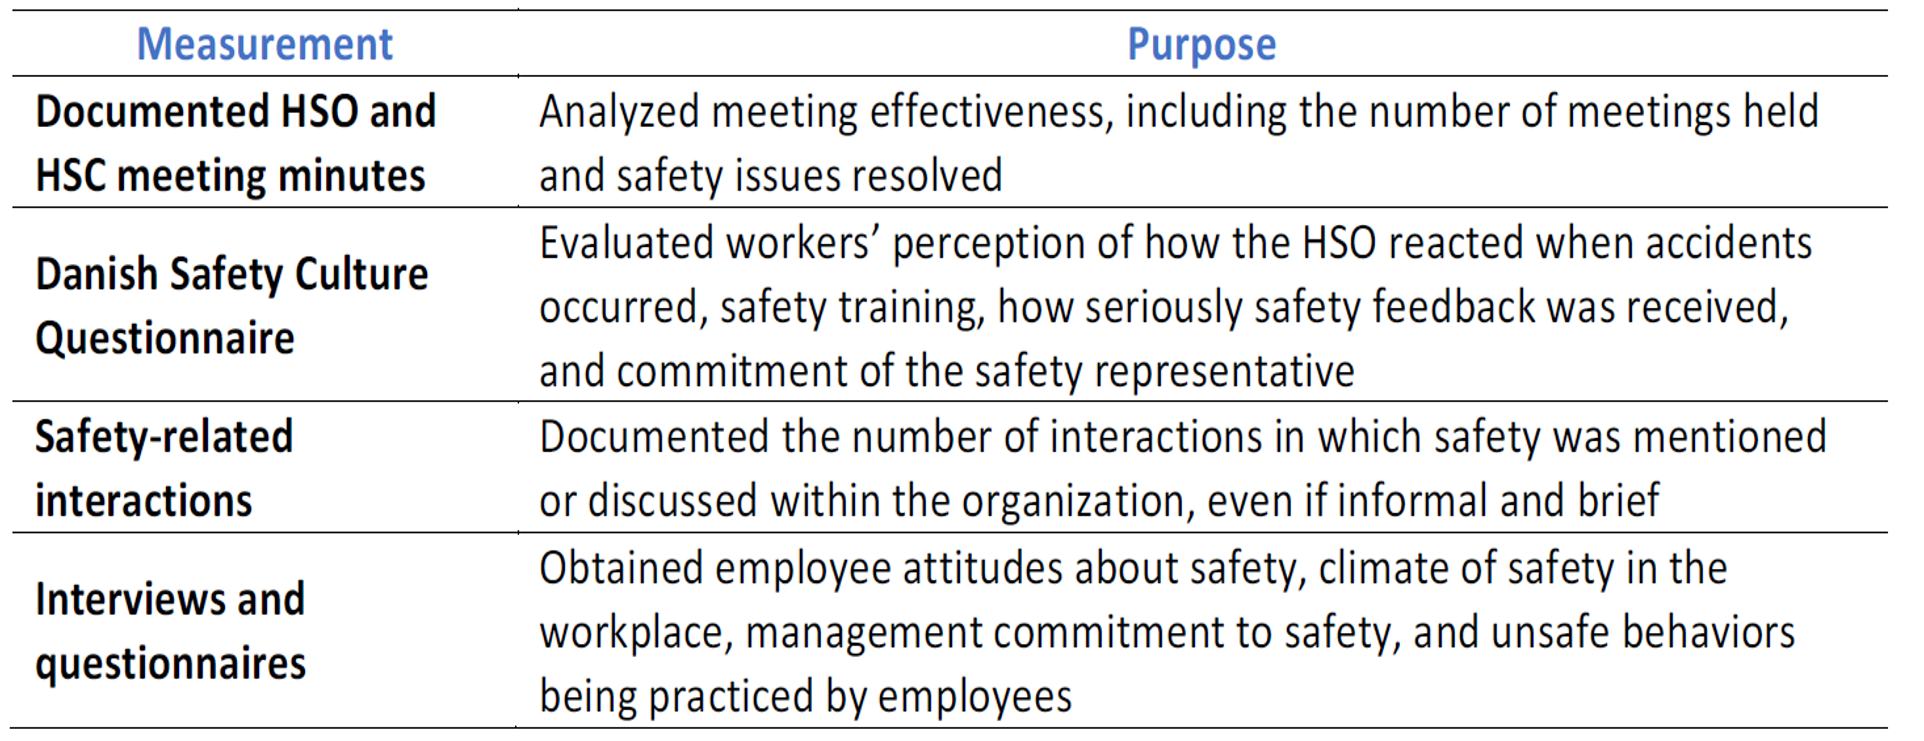 case study develop health and safety Environments on health and safety management within smes: a ghana case study health statistics this paper explores the environments within which smes manage health and safety in developing countries, in this case, ghana the majority of keywords: culture, developing countries, ghana, health and safety, smes.